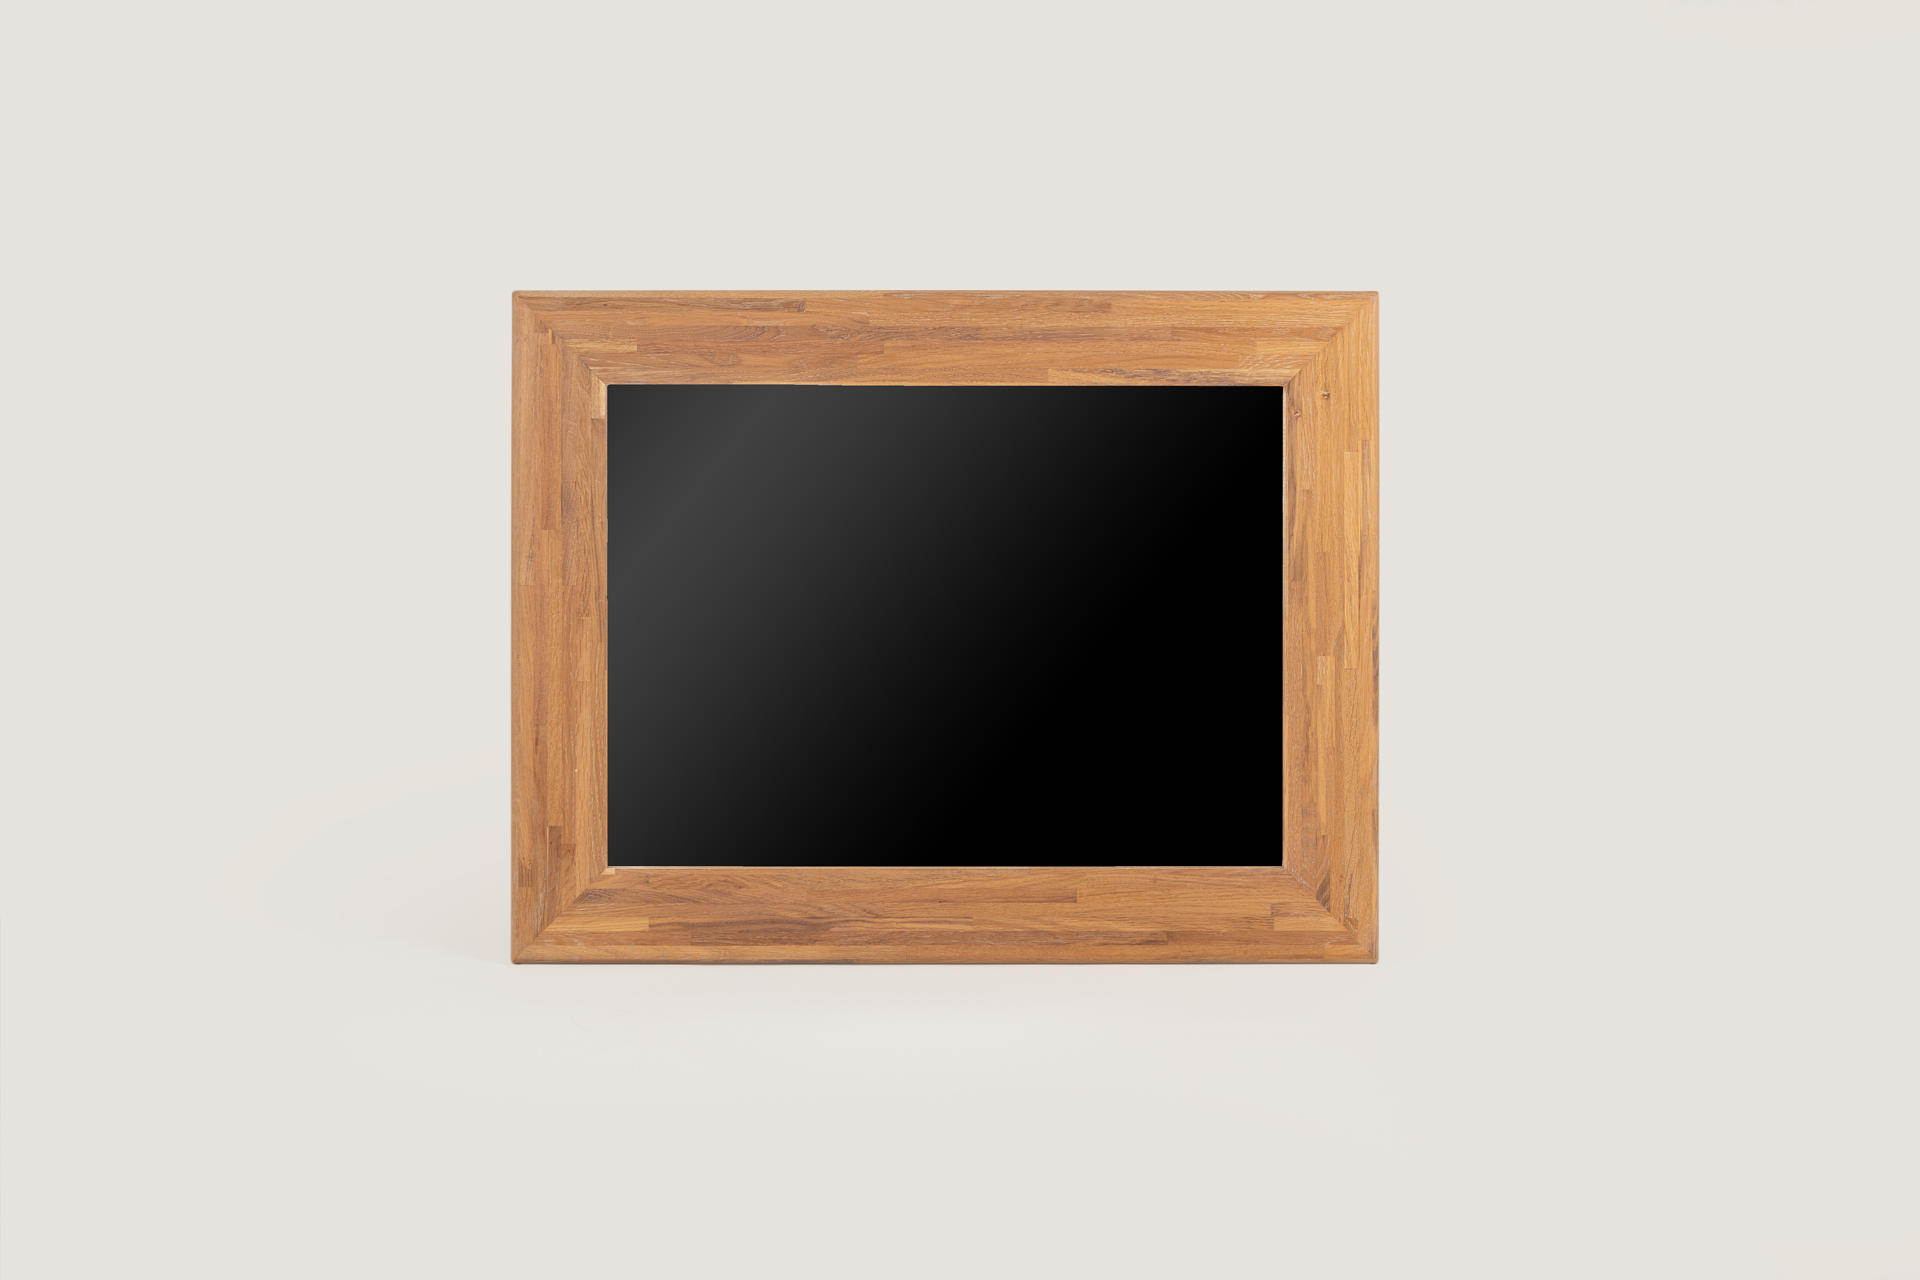 mirrors big design mirrors wood mood design by milica On miroir 70x170